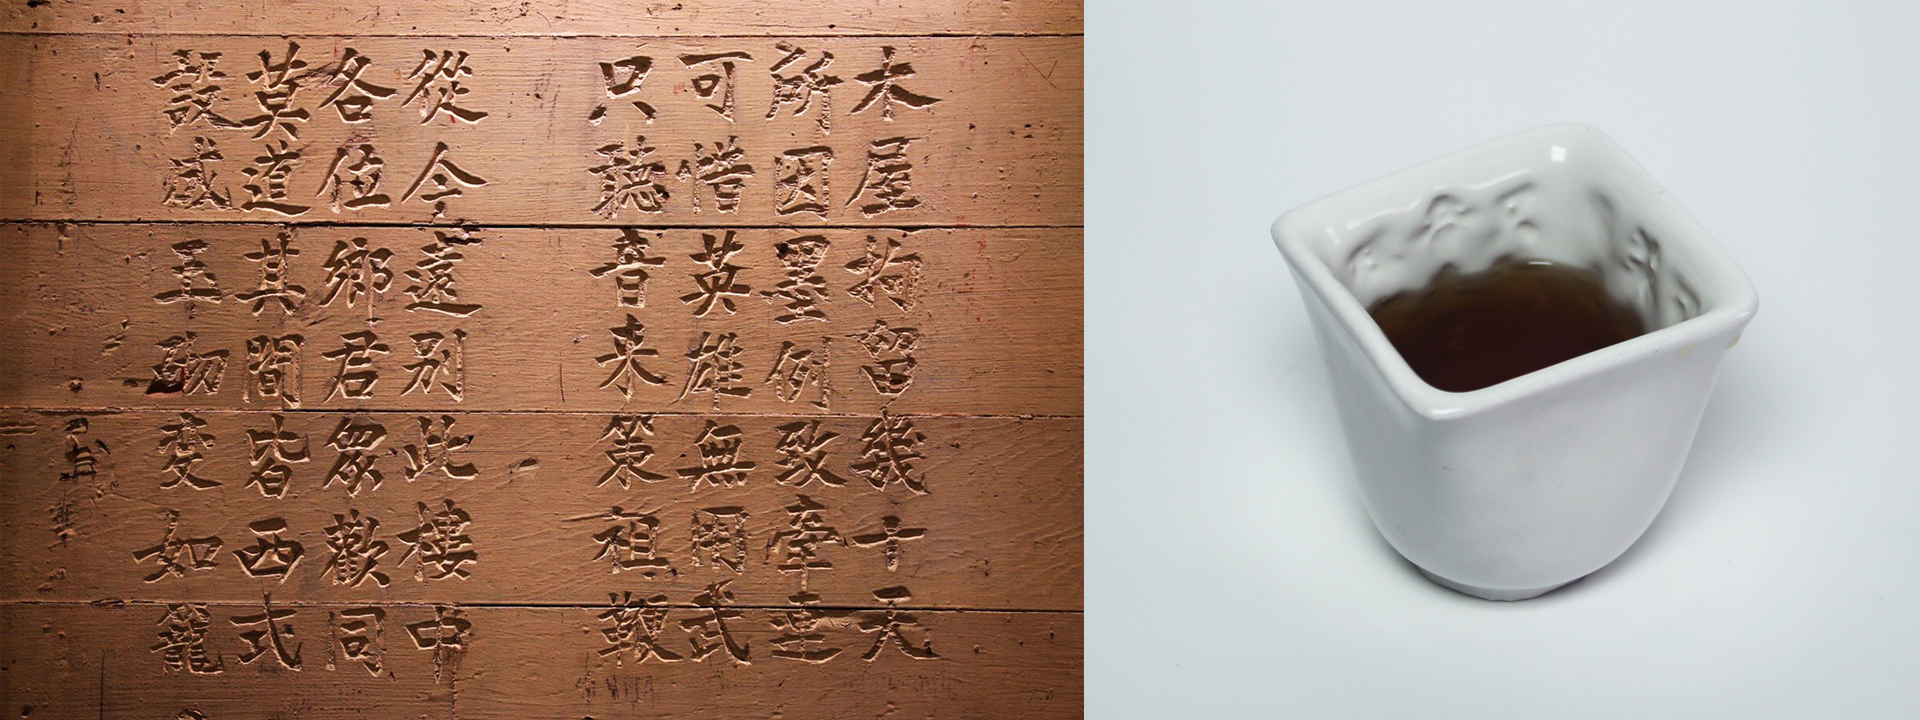 On left, a poem carved on the walls of Angel Island. On right, tea cup with poem carved on its interior.